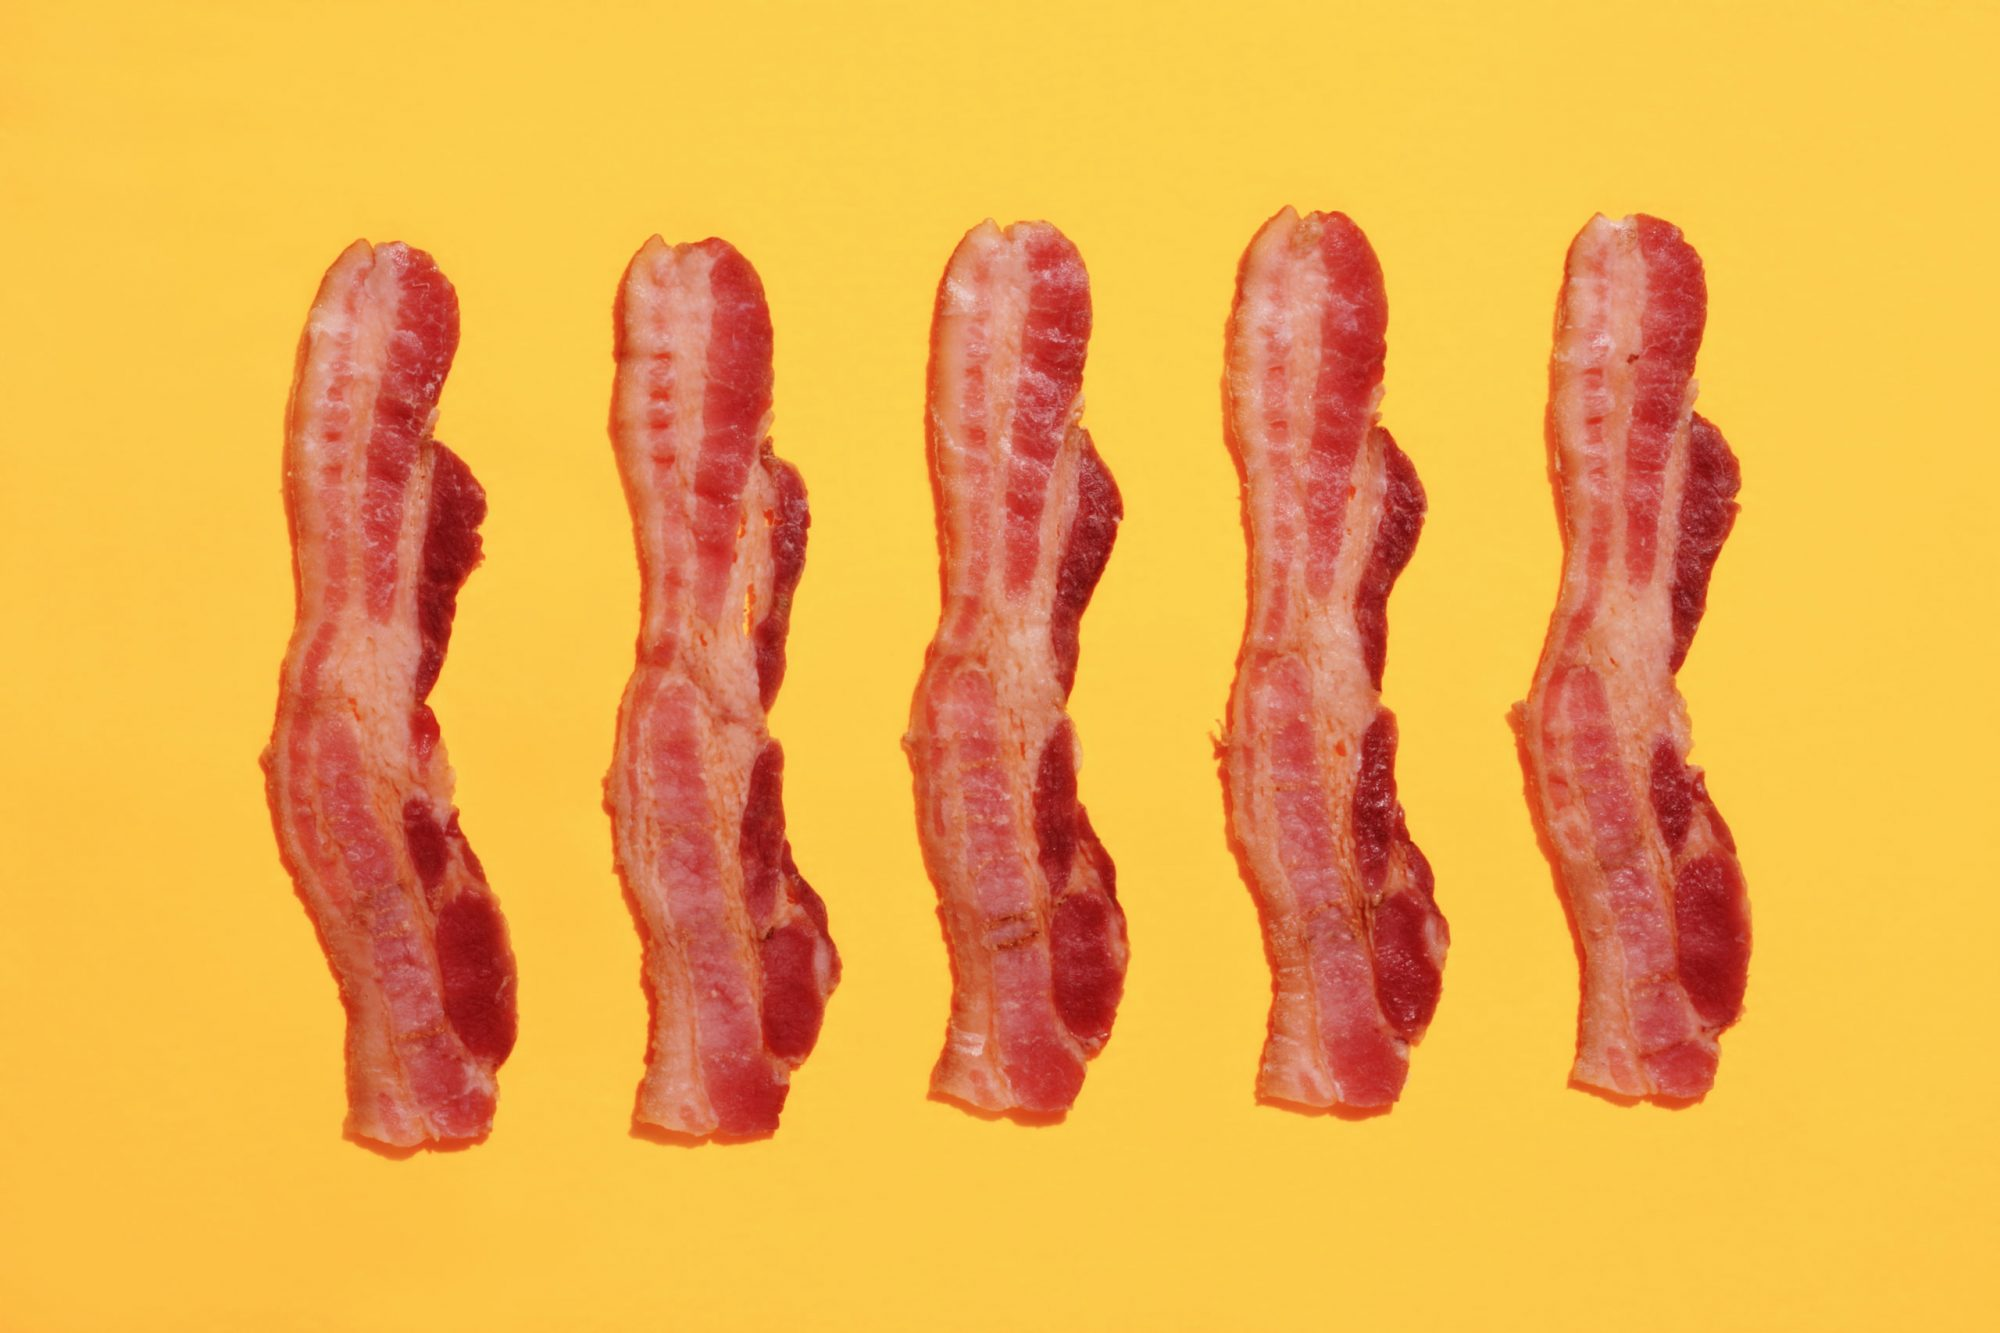 12 'Unhealthy' Foods Nutritionists Eat